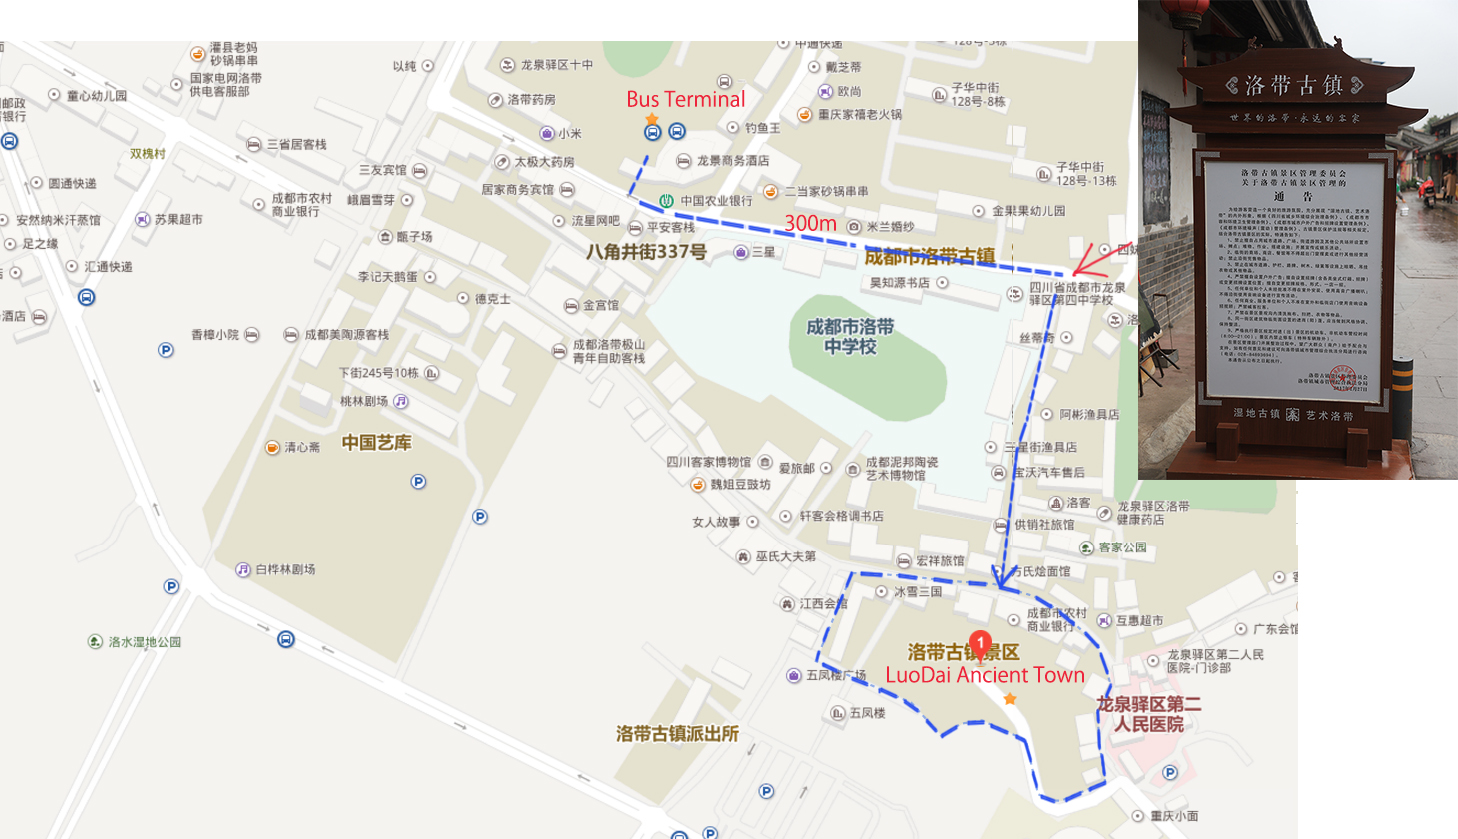 From Bus Terminal to LuoDai Ancient Town